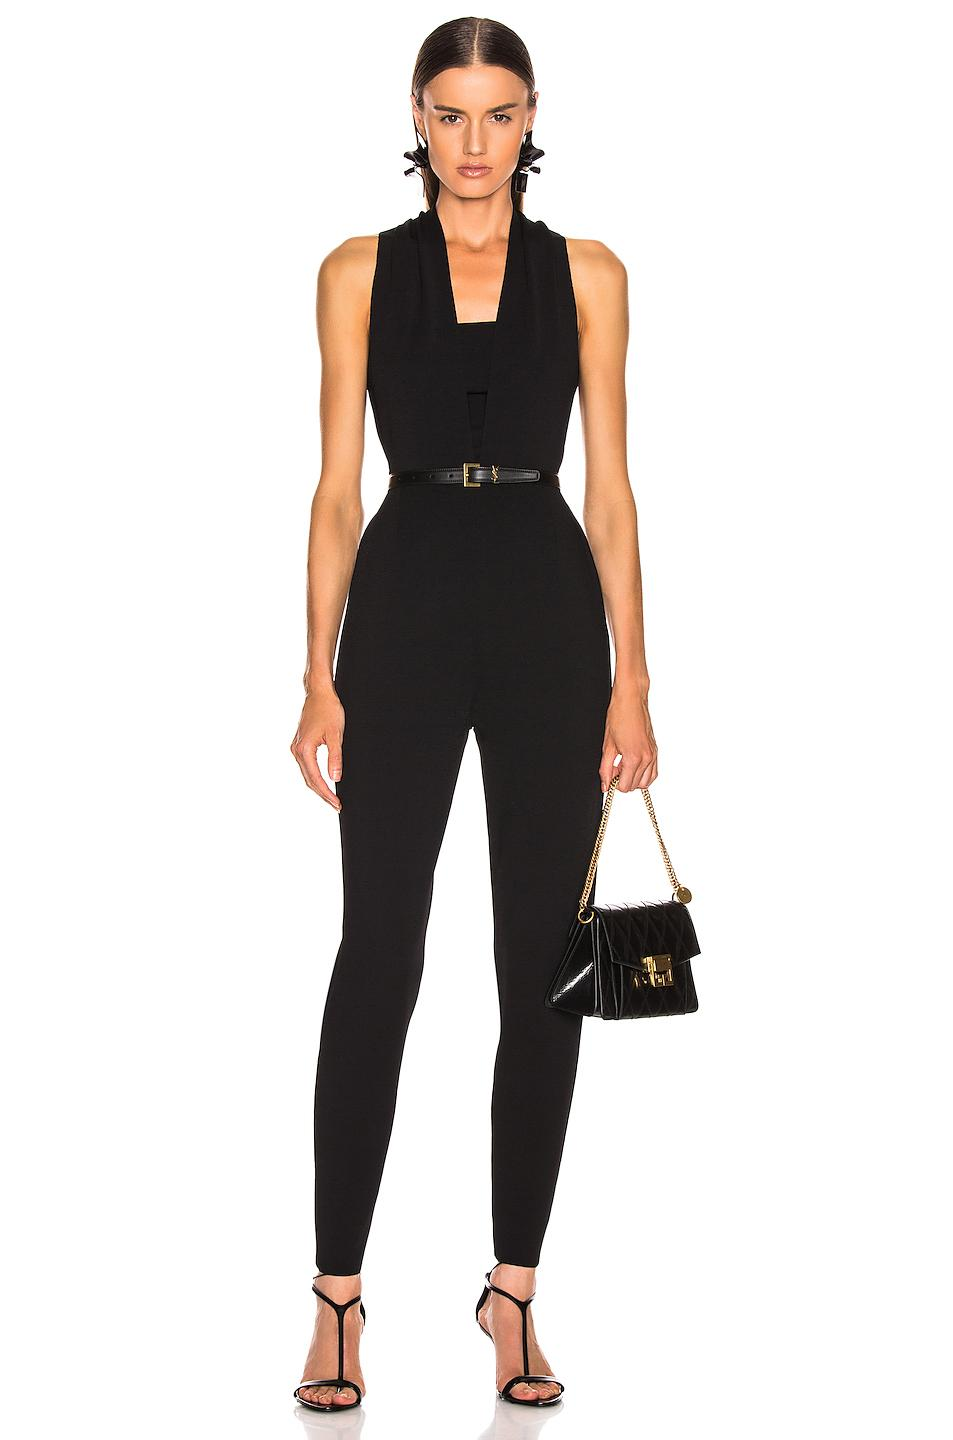 a17f0bef2f6 Lyst - Stella McCartney All In One Strong Jumpsuit in Black